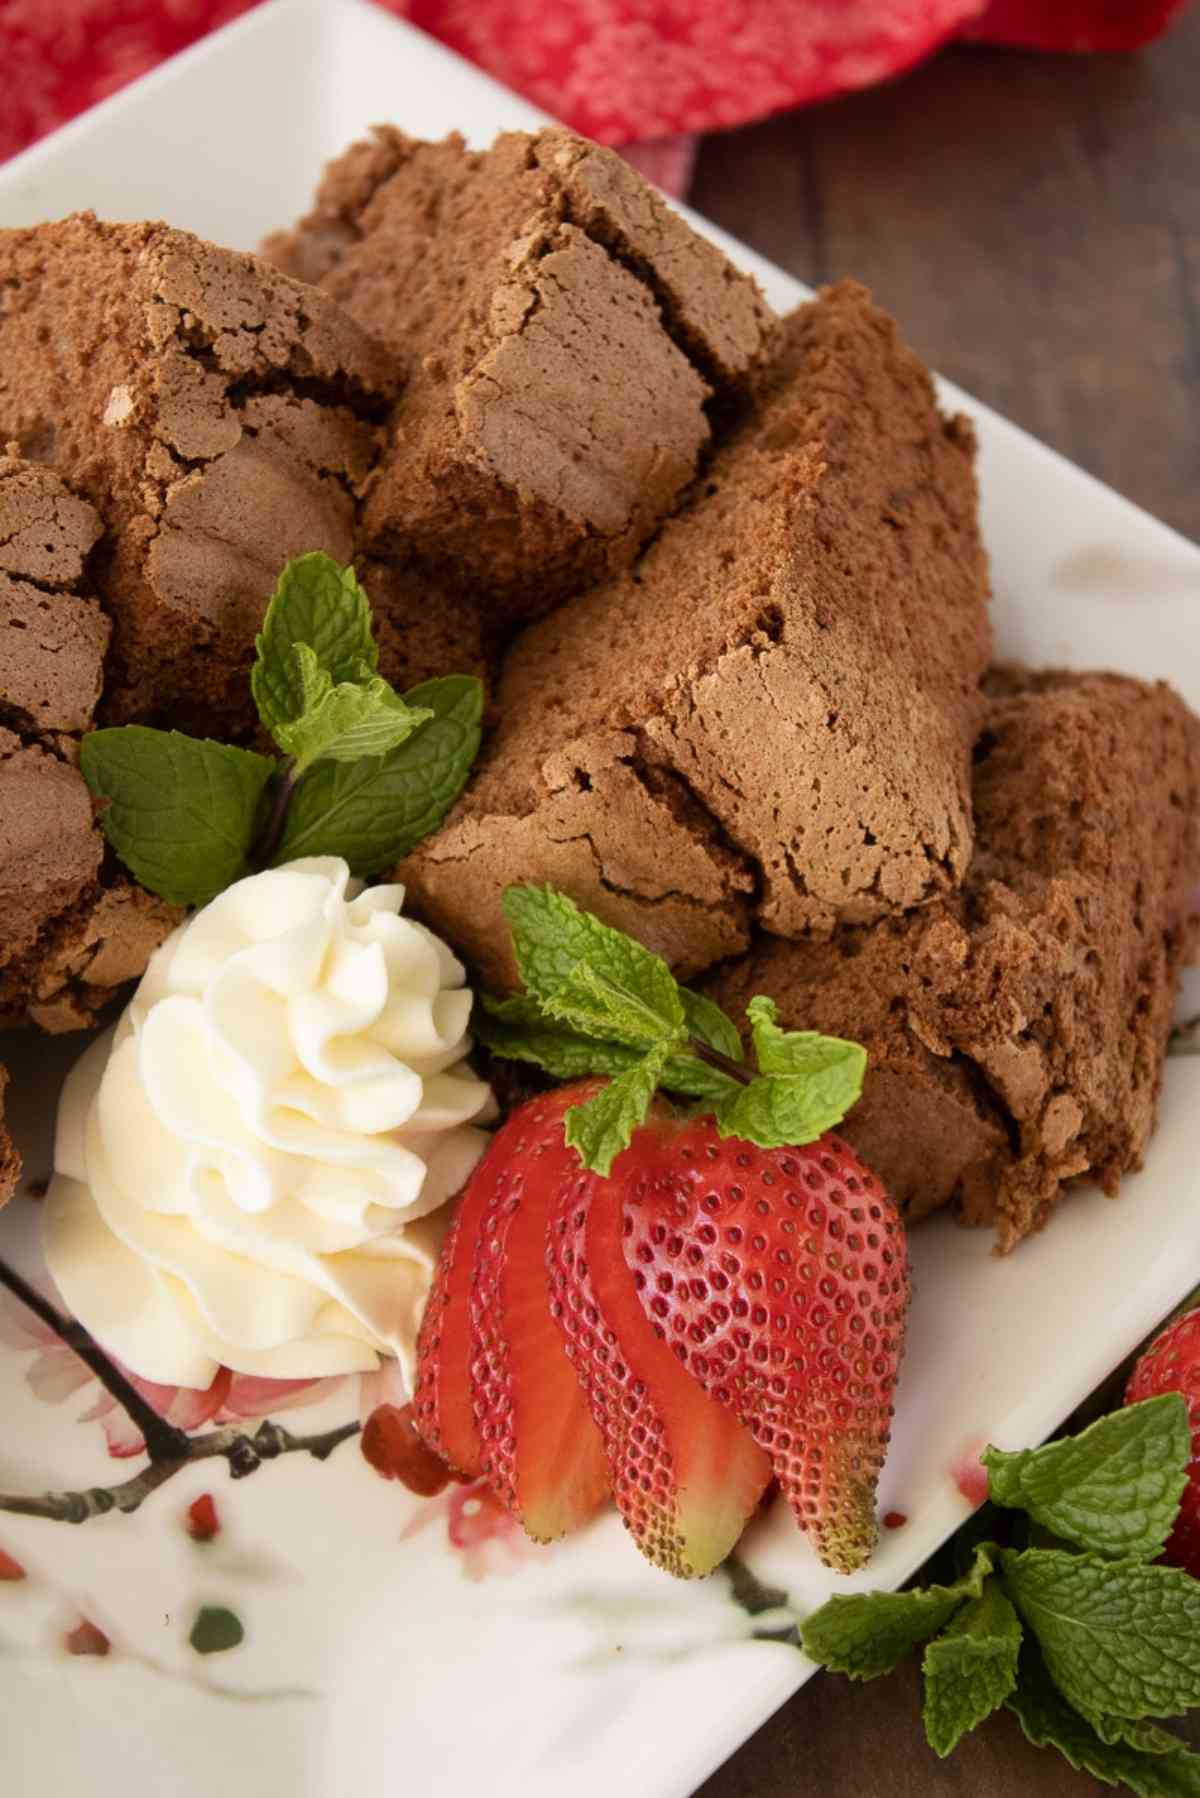 Wedges of chocolate angel food cake with fresh whipped cream.